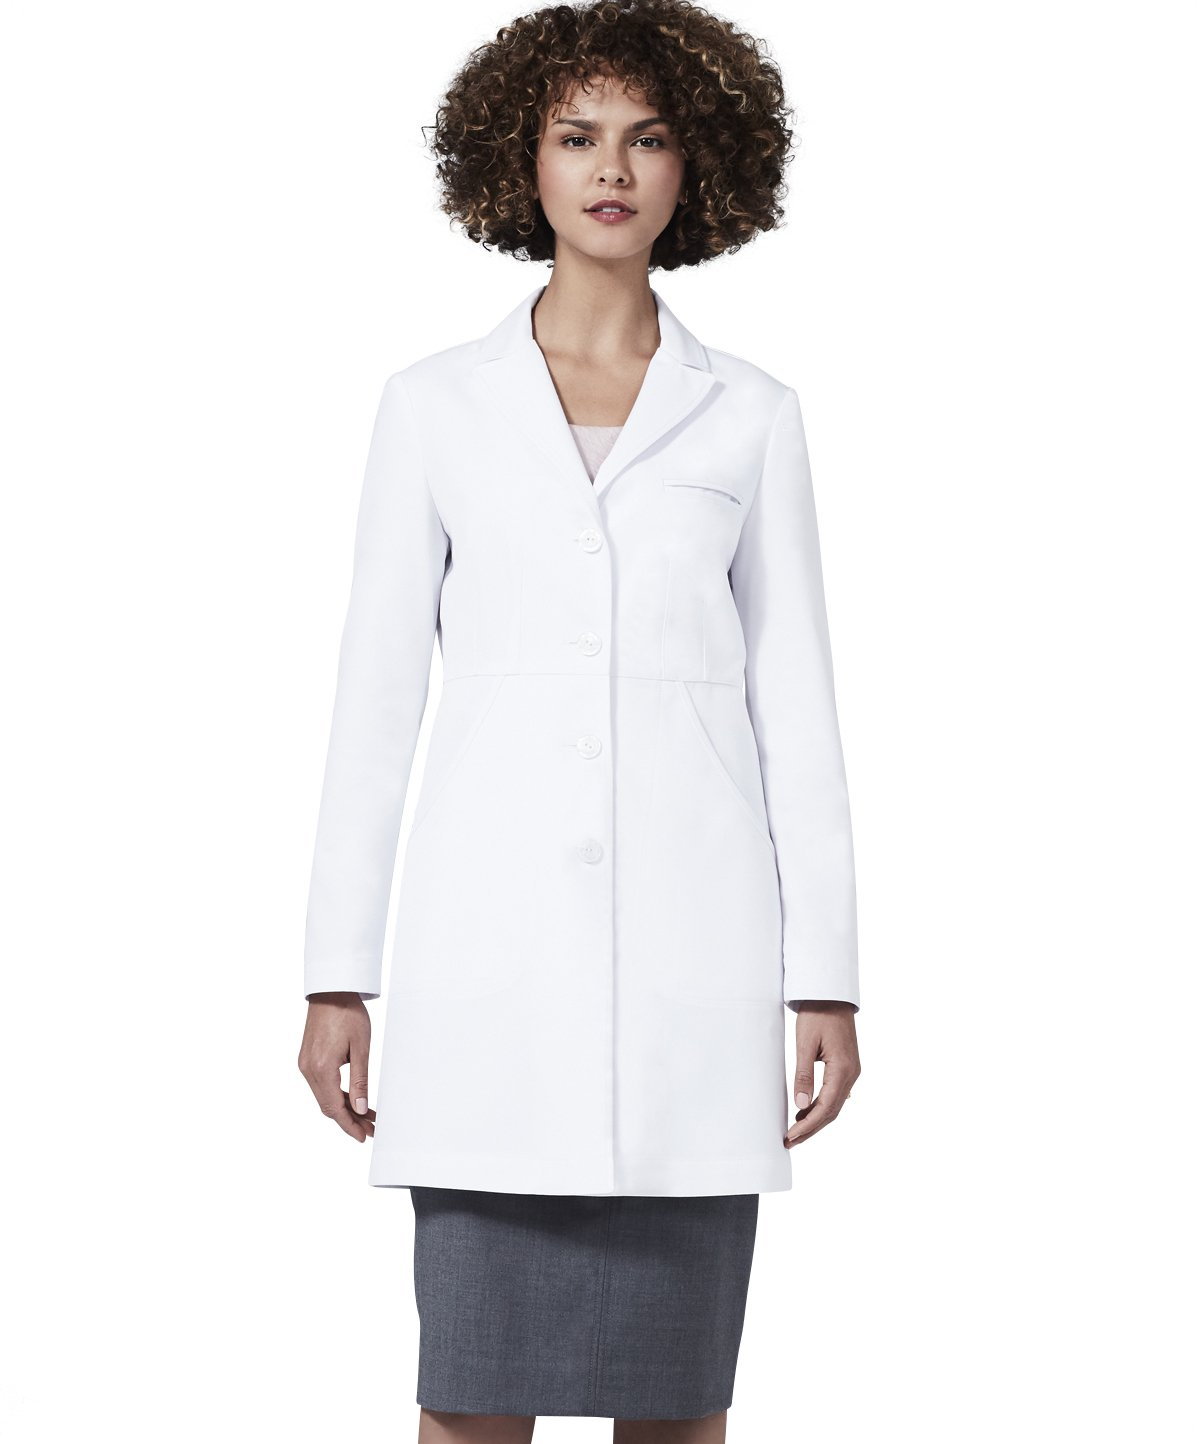 Medelita Women's Miranda B. Slim Fit M3 White Lab Coat (12, White)